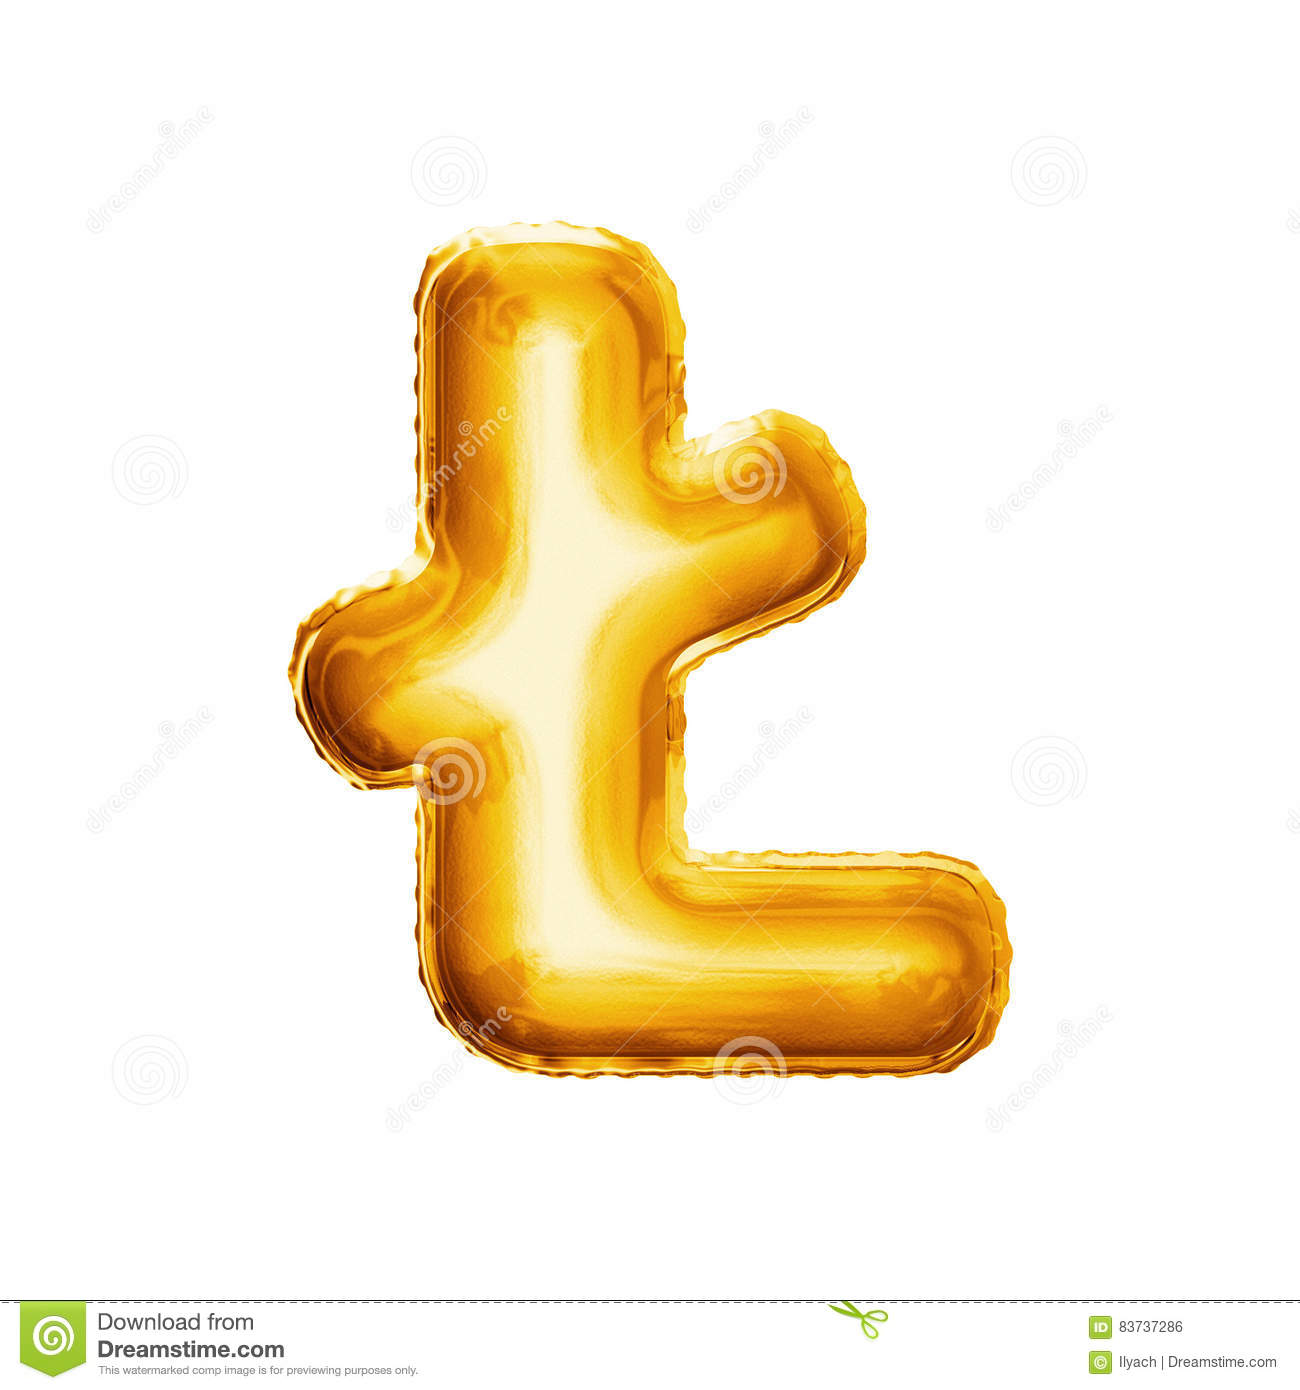 Balloon Letter L With Stroke 3d Golden Foil Realistic